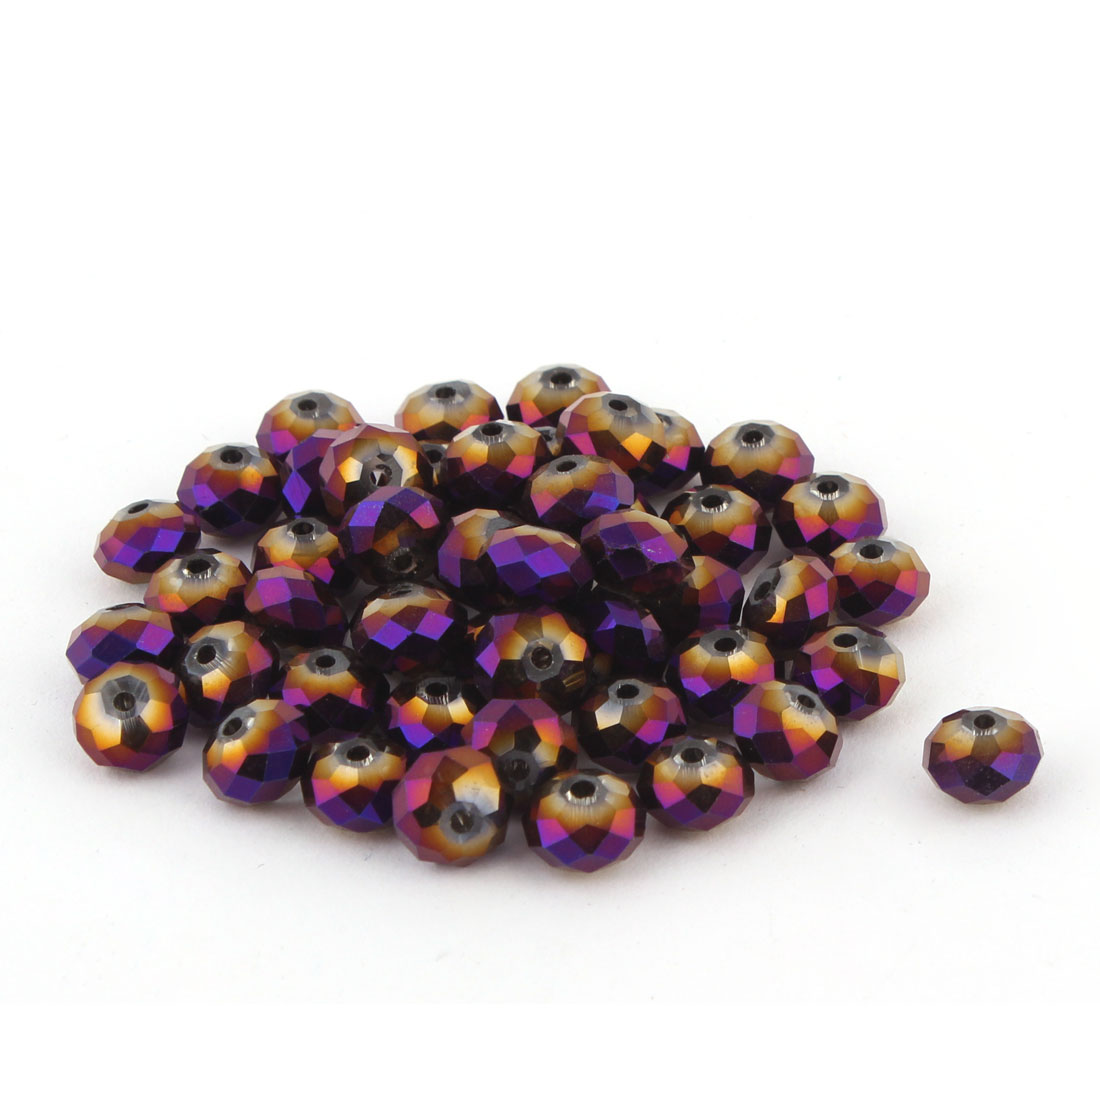 Lady Jewelry Bracelet Necklace Artifical Glittery Crystal Beads Purple Gold 8MM 50 PCS